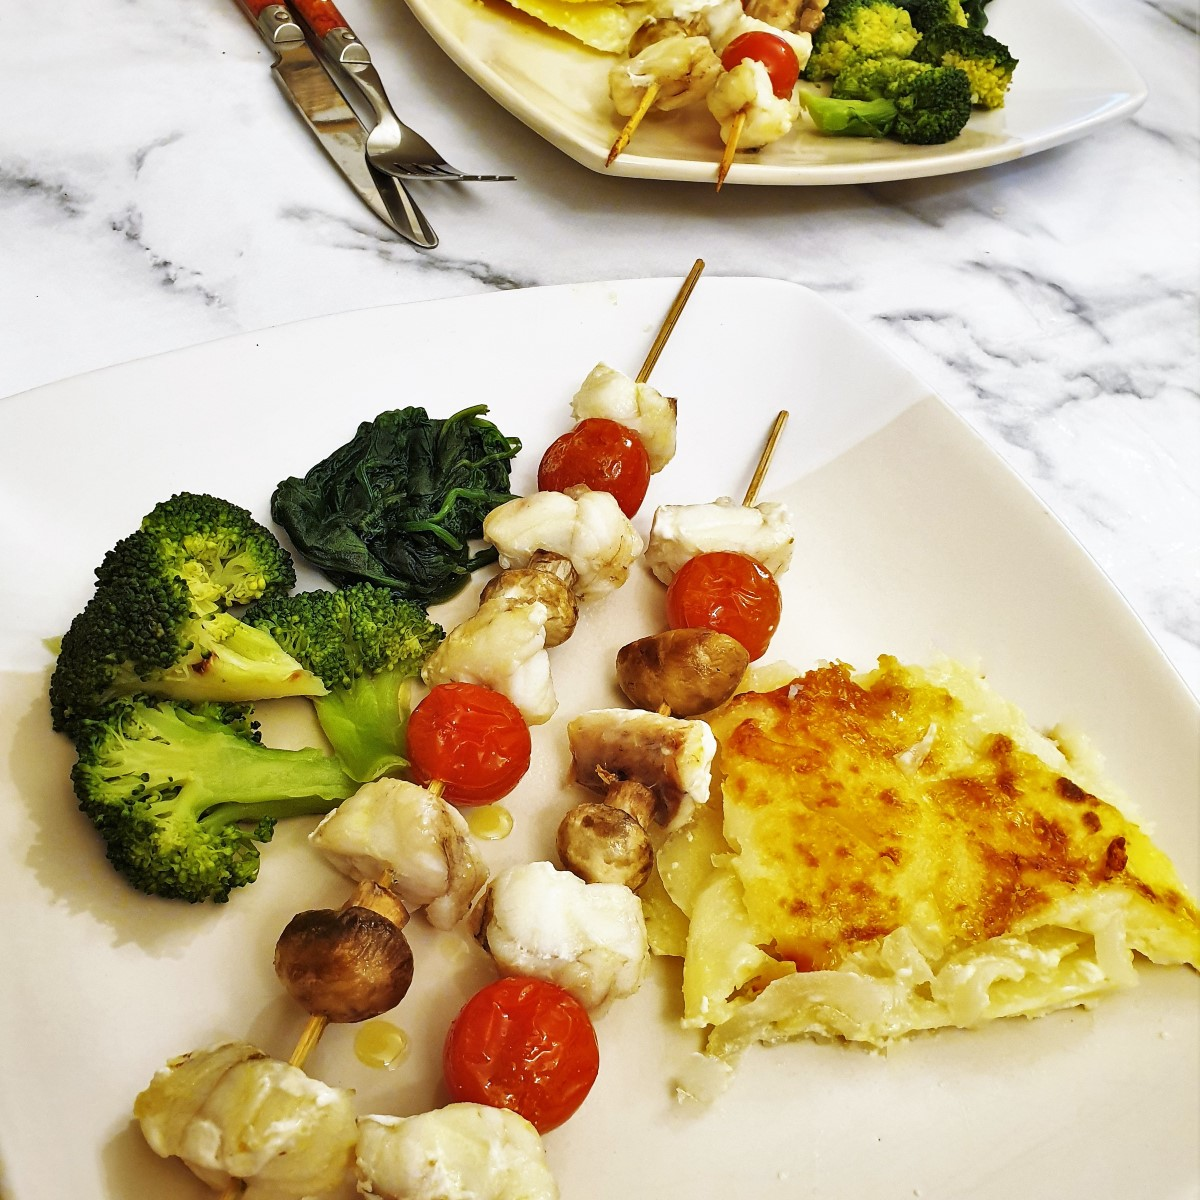 Monkfish skewers on a plate with vegetables.